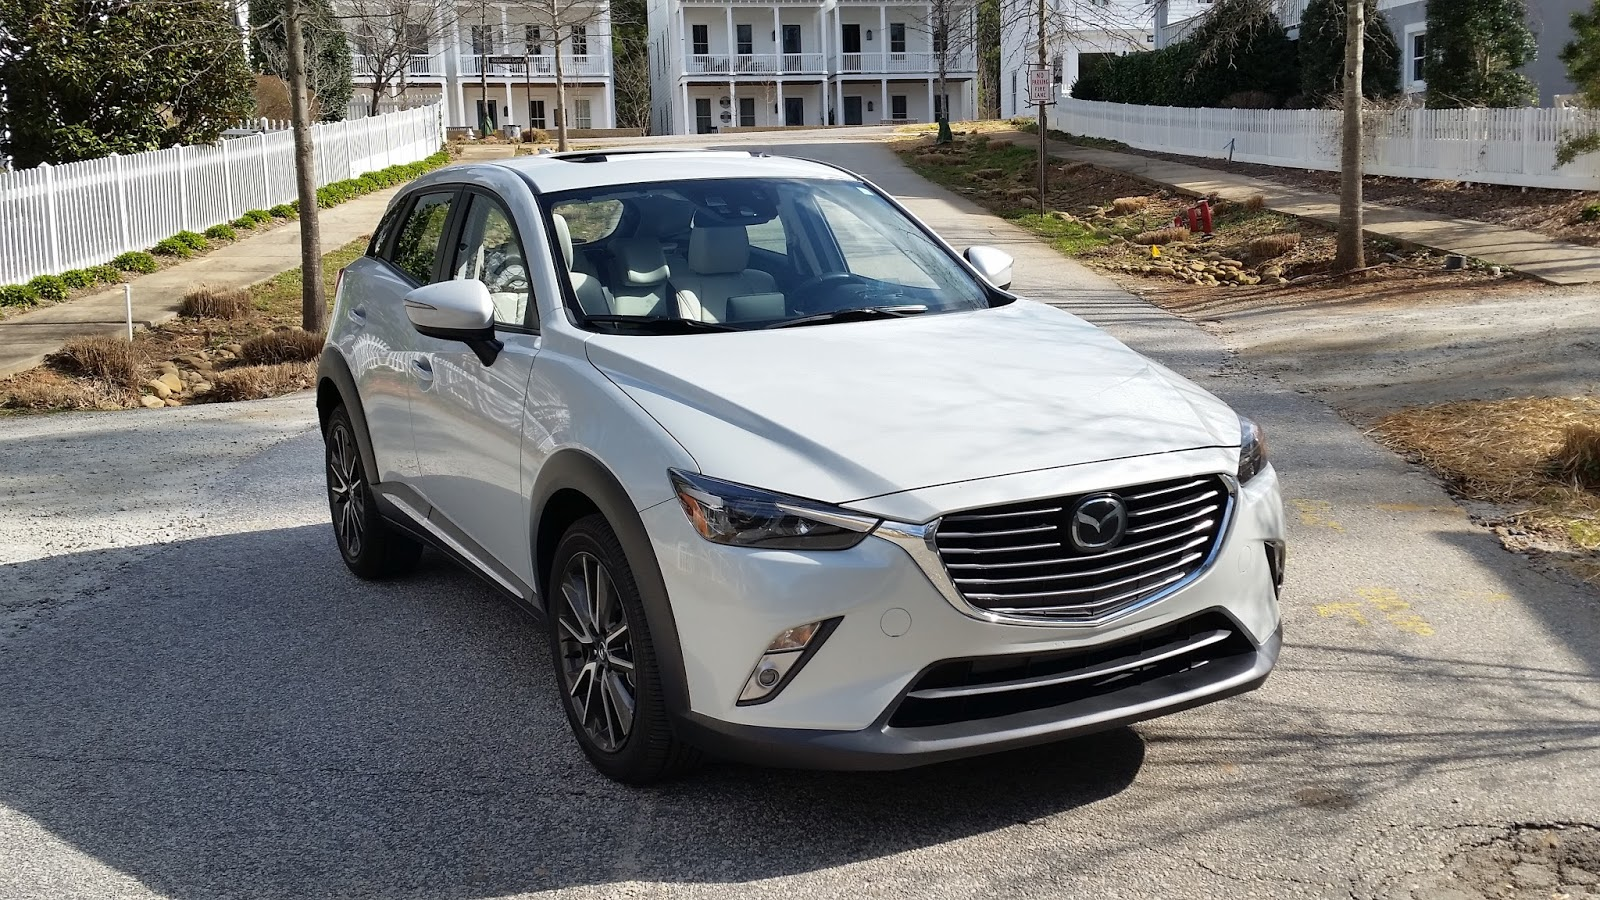 2016 Mazda CX-3 Grand Touring AWD: The Brand's Entry-Level Upscale, Compact  Crossover